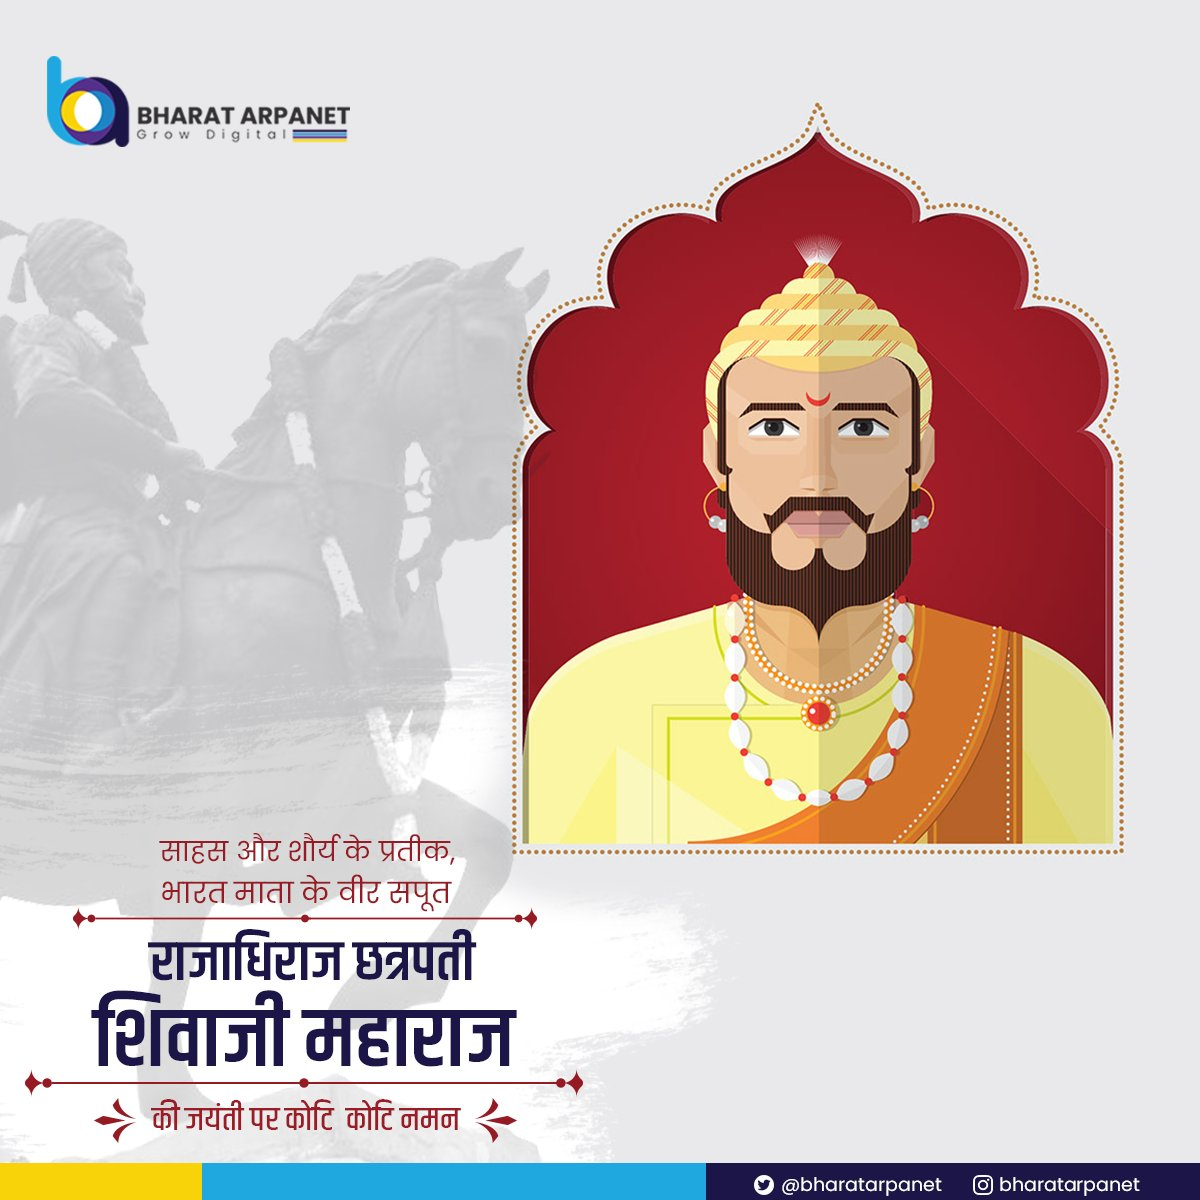 Let Us Celebrate Shivaji Jayanti by Promising Ourselves to Always Walk the Path of Righteousness Like Shivaji Maharaj and Make Our Nation Proud.  #ShivajiMaharaj #शिवजयंती #शिवाजीमहाराज #WednesdayWisdom #WednesdayVibes #BharatArpanet https://t.co/Ke8jW5JmWS